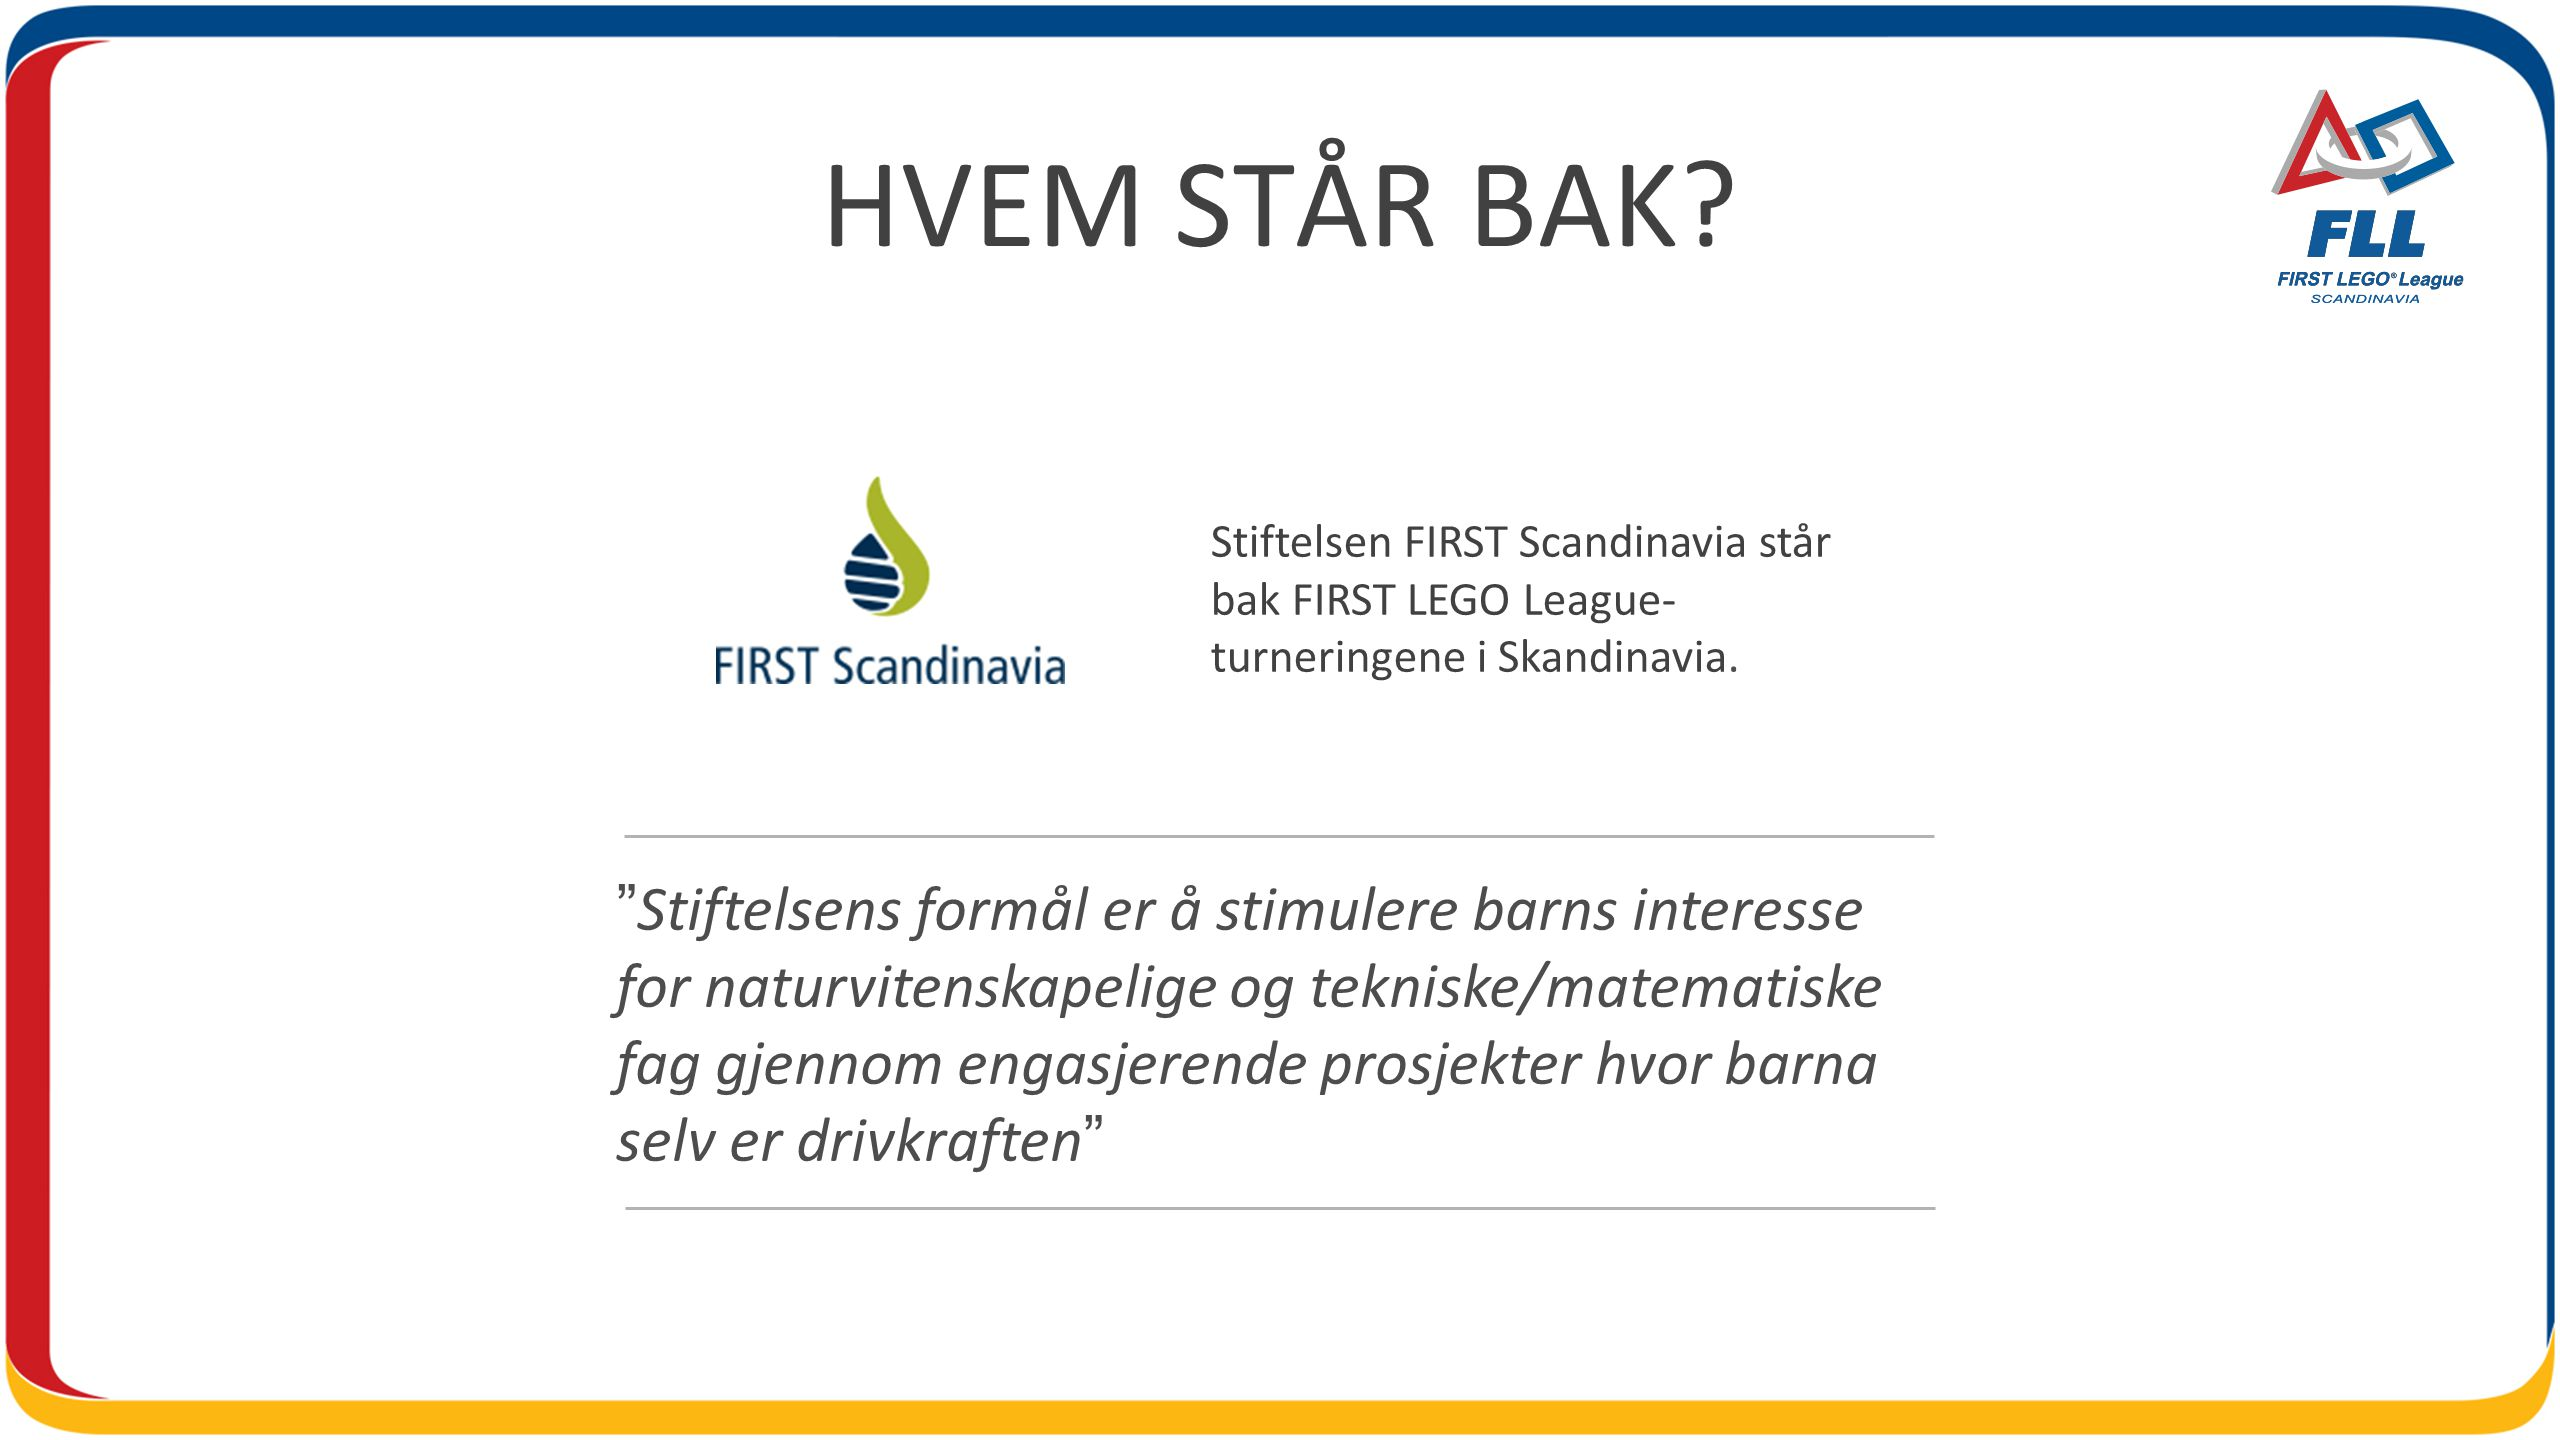 HVEM STÅR BAK Stiftelsen FIRST Scandinavia står bak FIRST LEGO League-turneringene i Skandinavia.